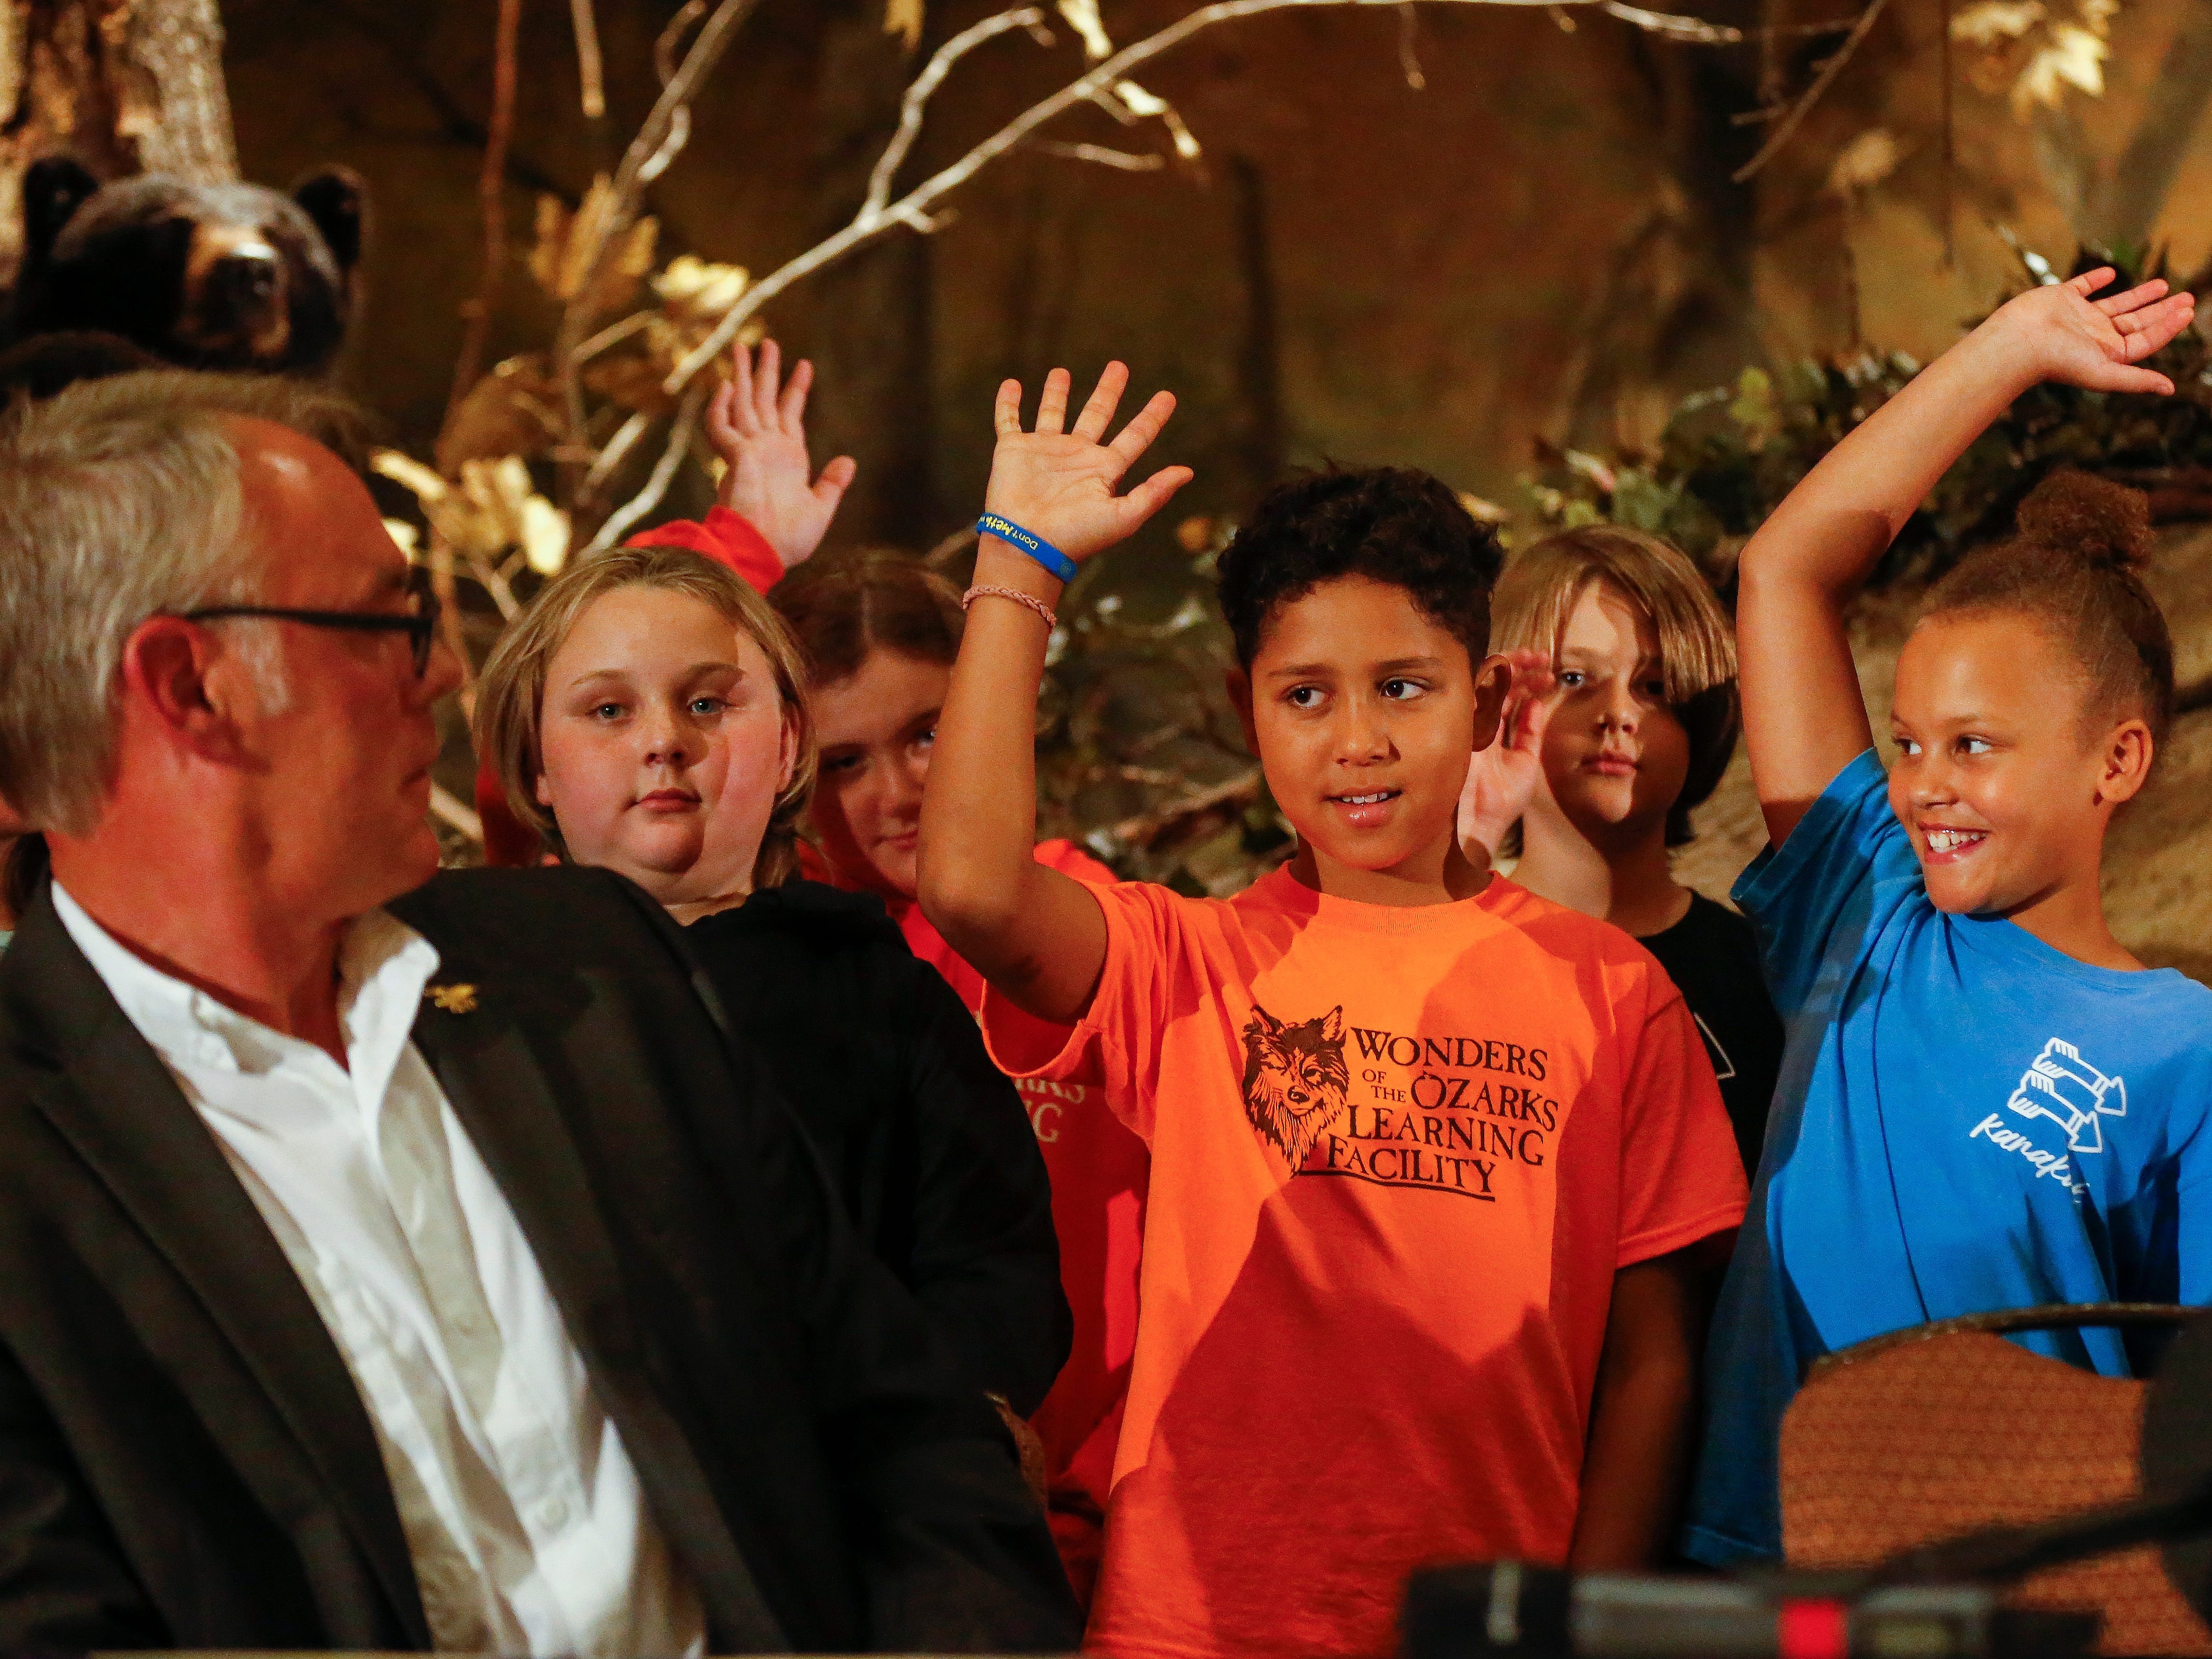 U.S. Secretary of the Interior Ryan Zinke looks at all the students from the WOLF School who raised their hands when he asked how many of them had been fishing during the 11th Annual Private Lands Partners Day at the White River Conference Center on Thursday, Oct. 4, 2018.